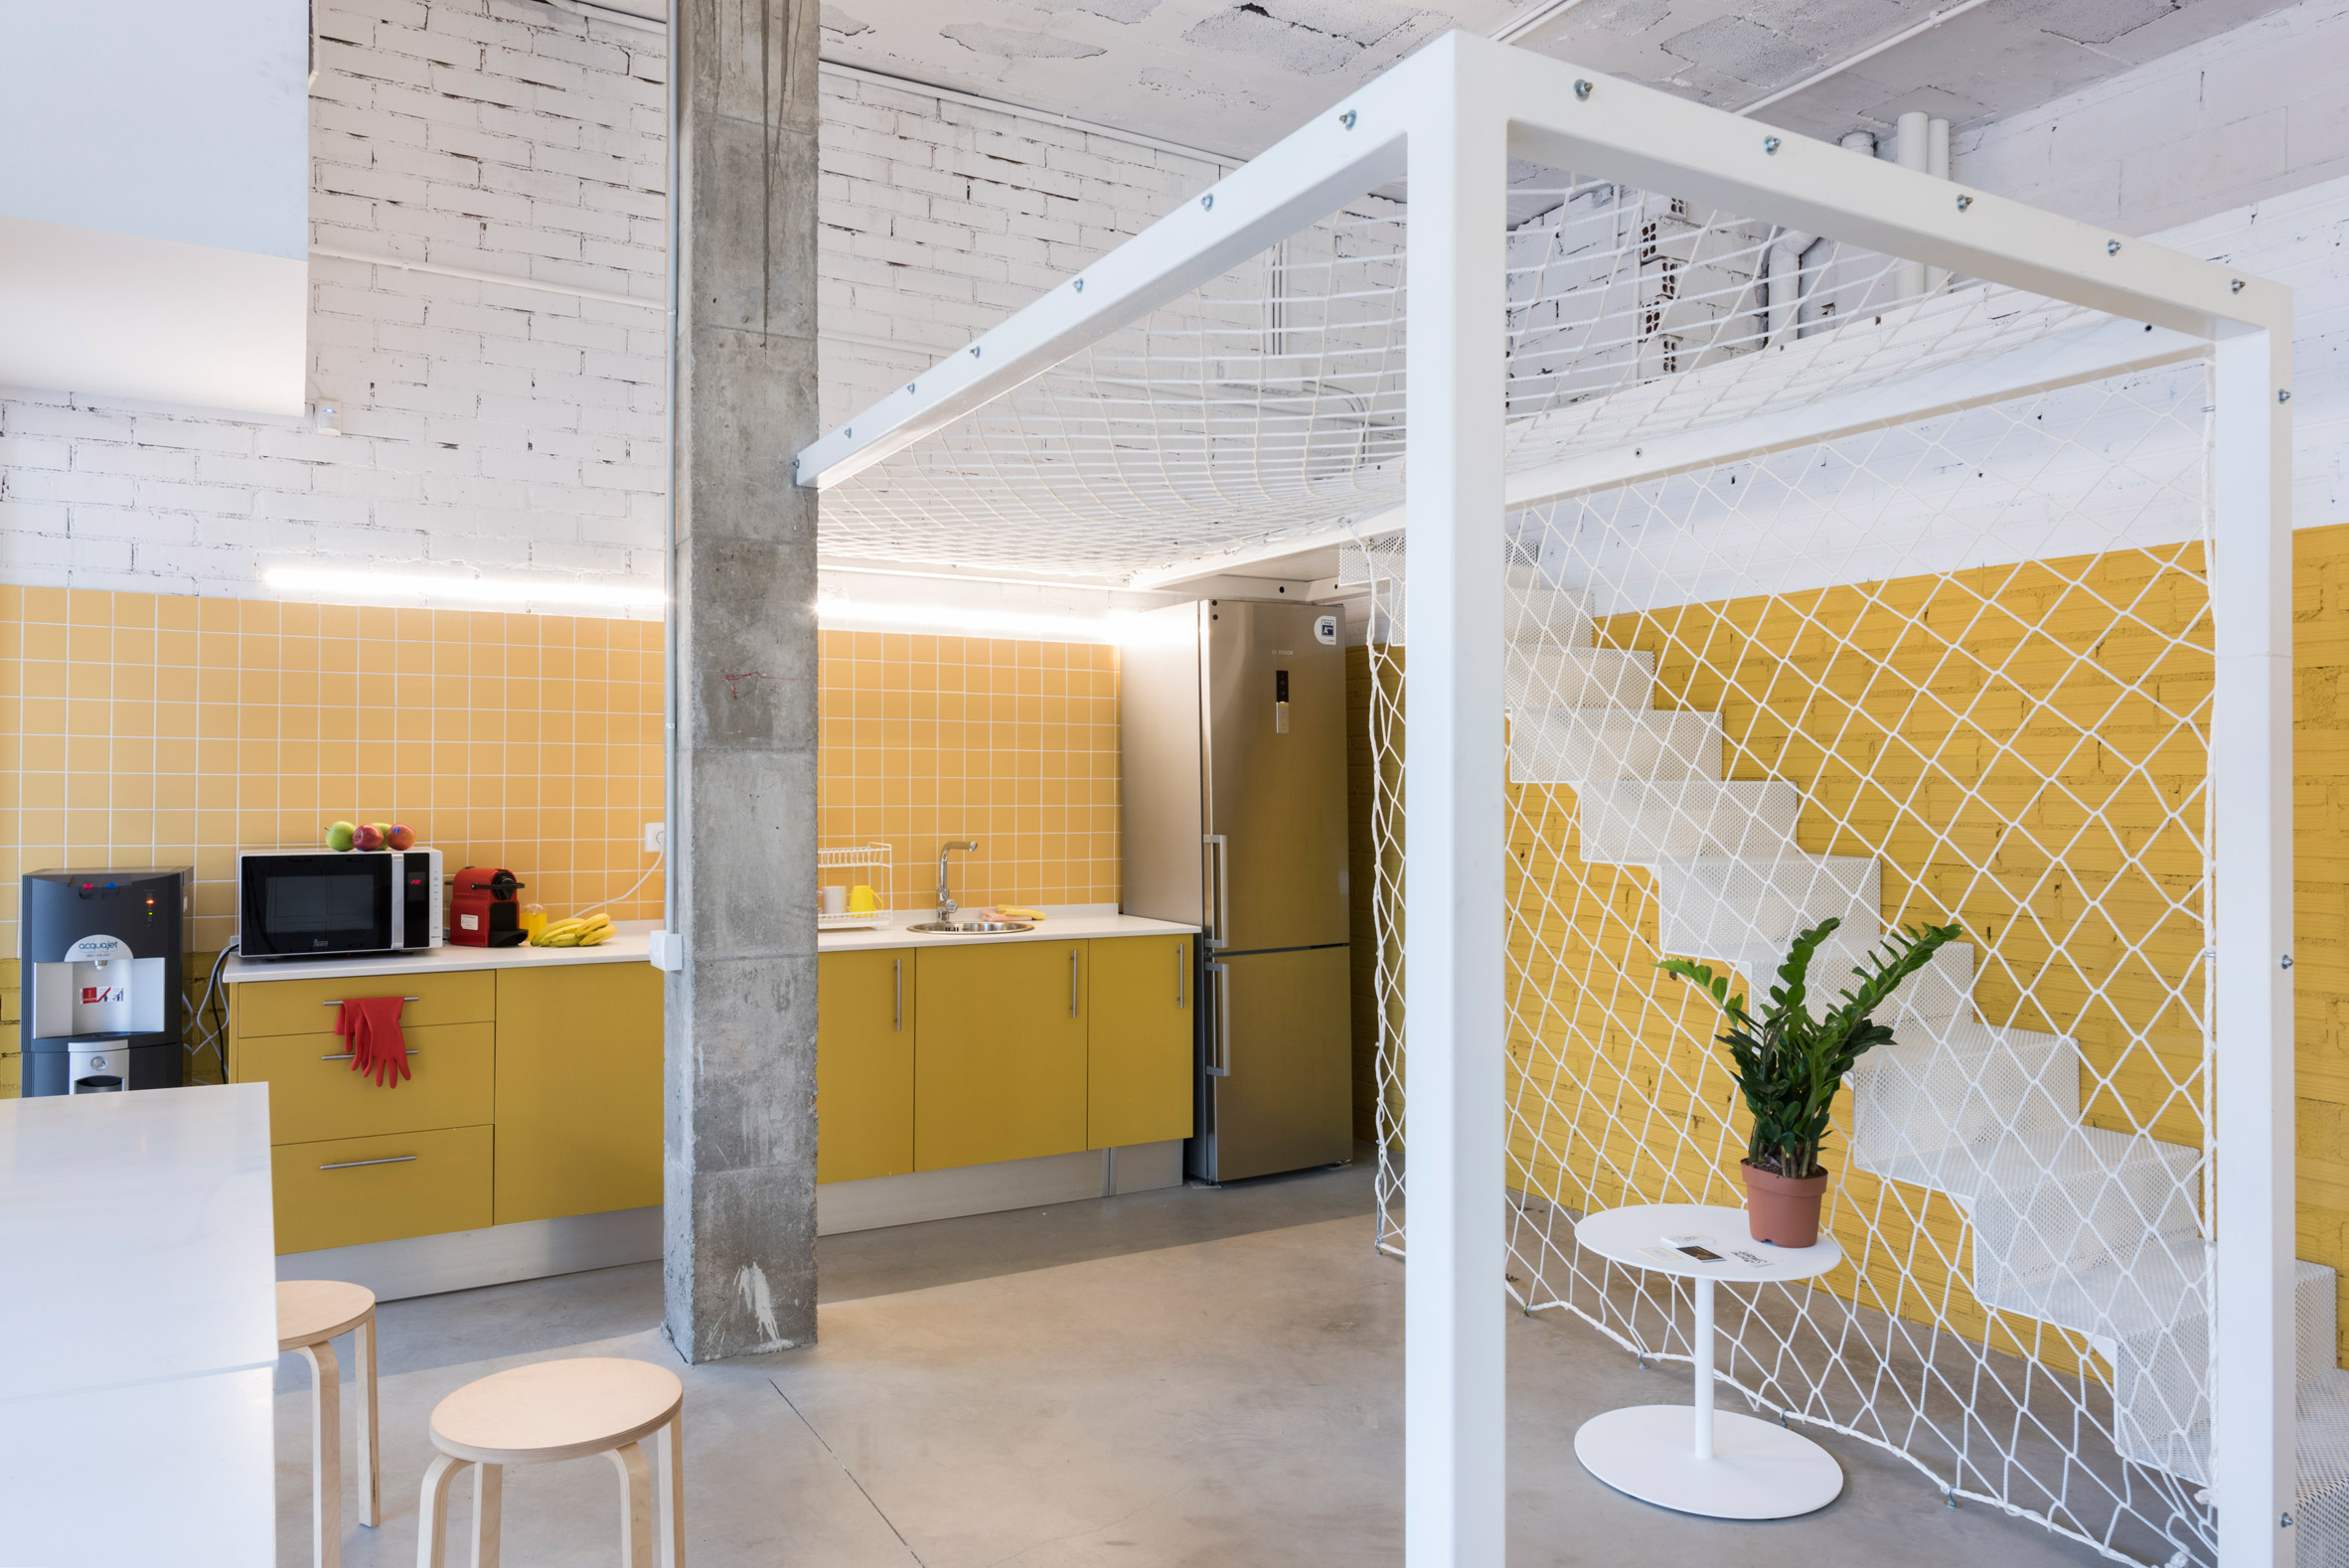 Sine?rgics co-working spaces in Barcelona showcase low-budget furniture solutions